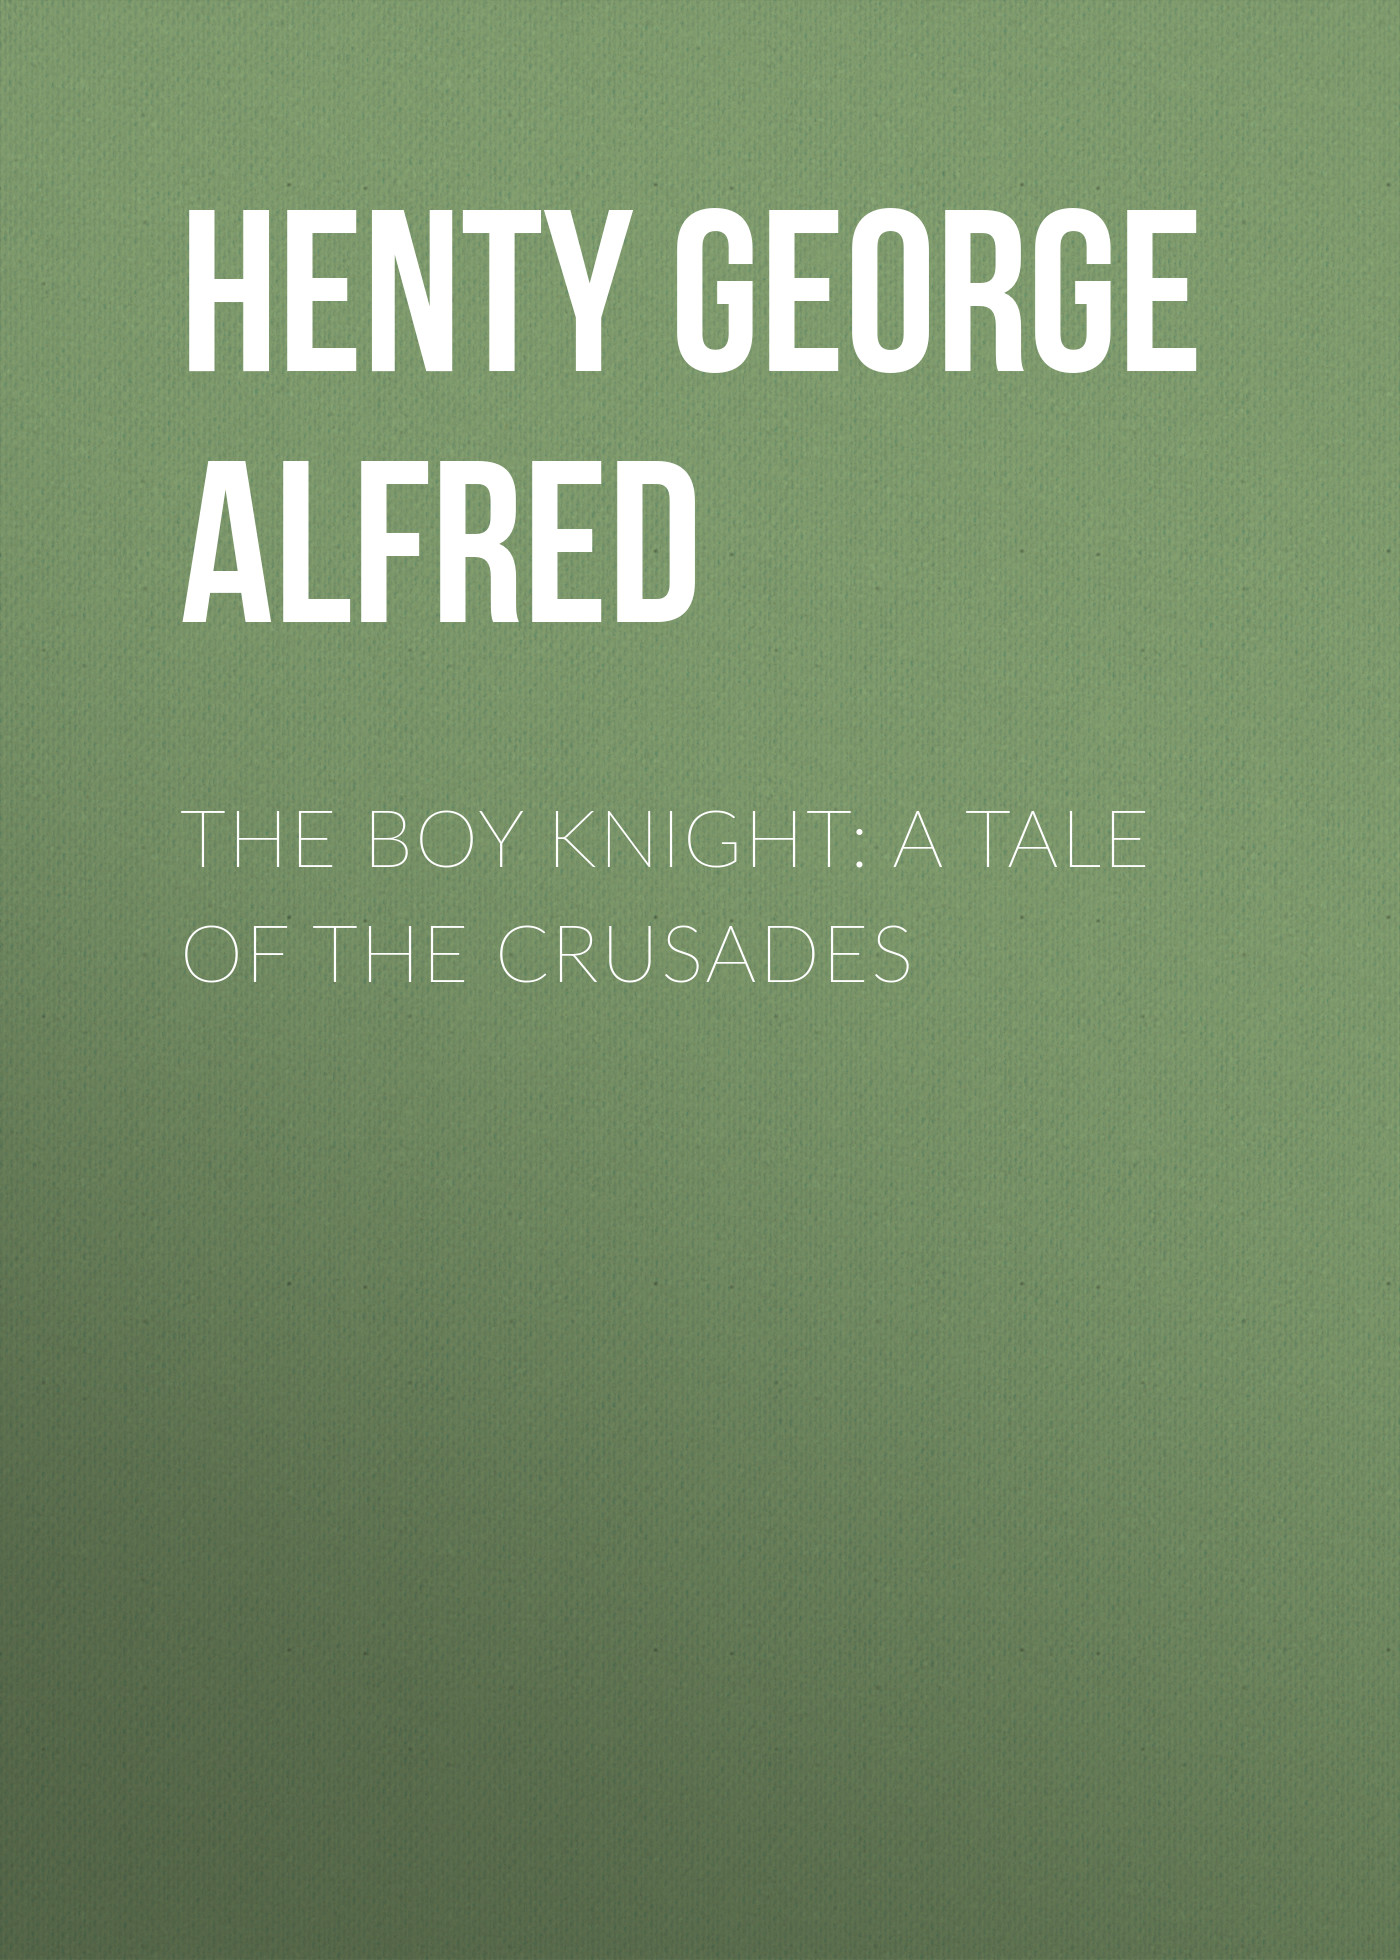 Henty George Alfred The Boy Knight: A Tale of the Crusades henty george alfred in the reign of terror the adventures of a westminster boy